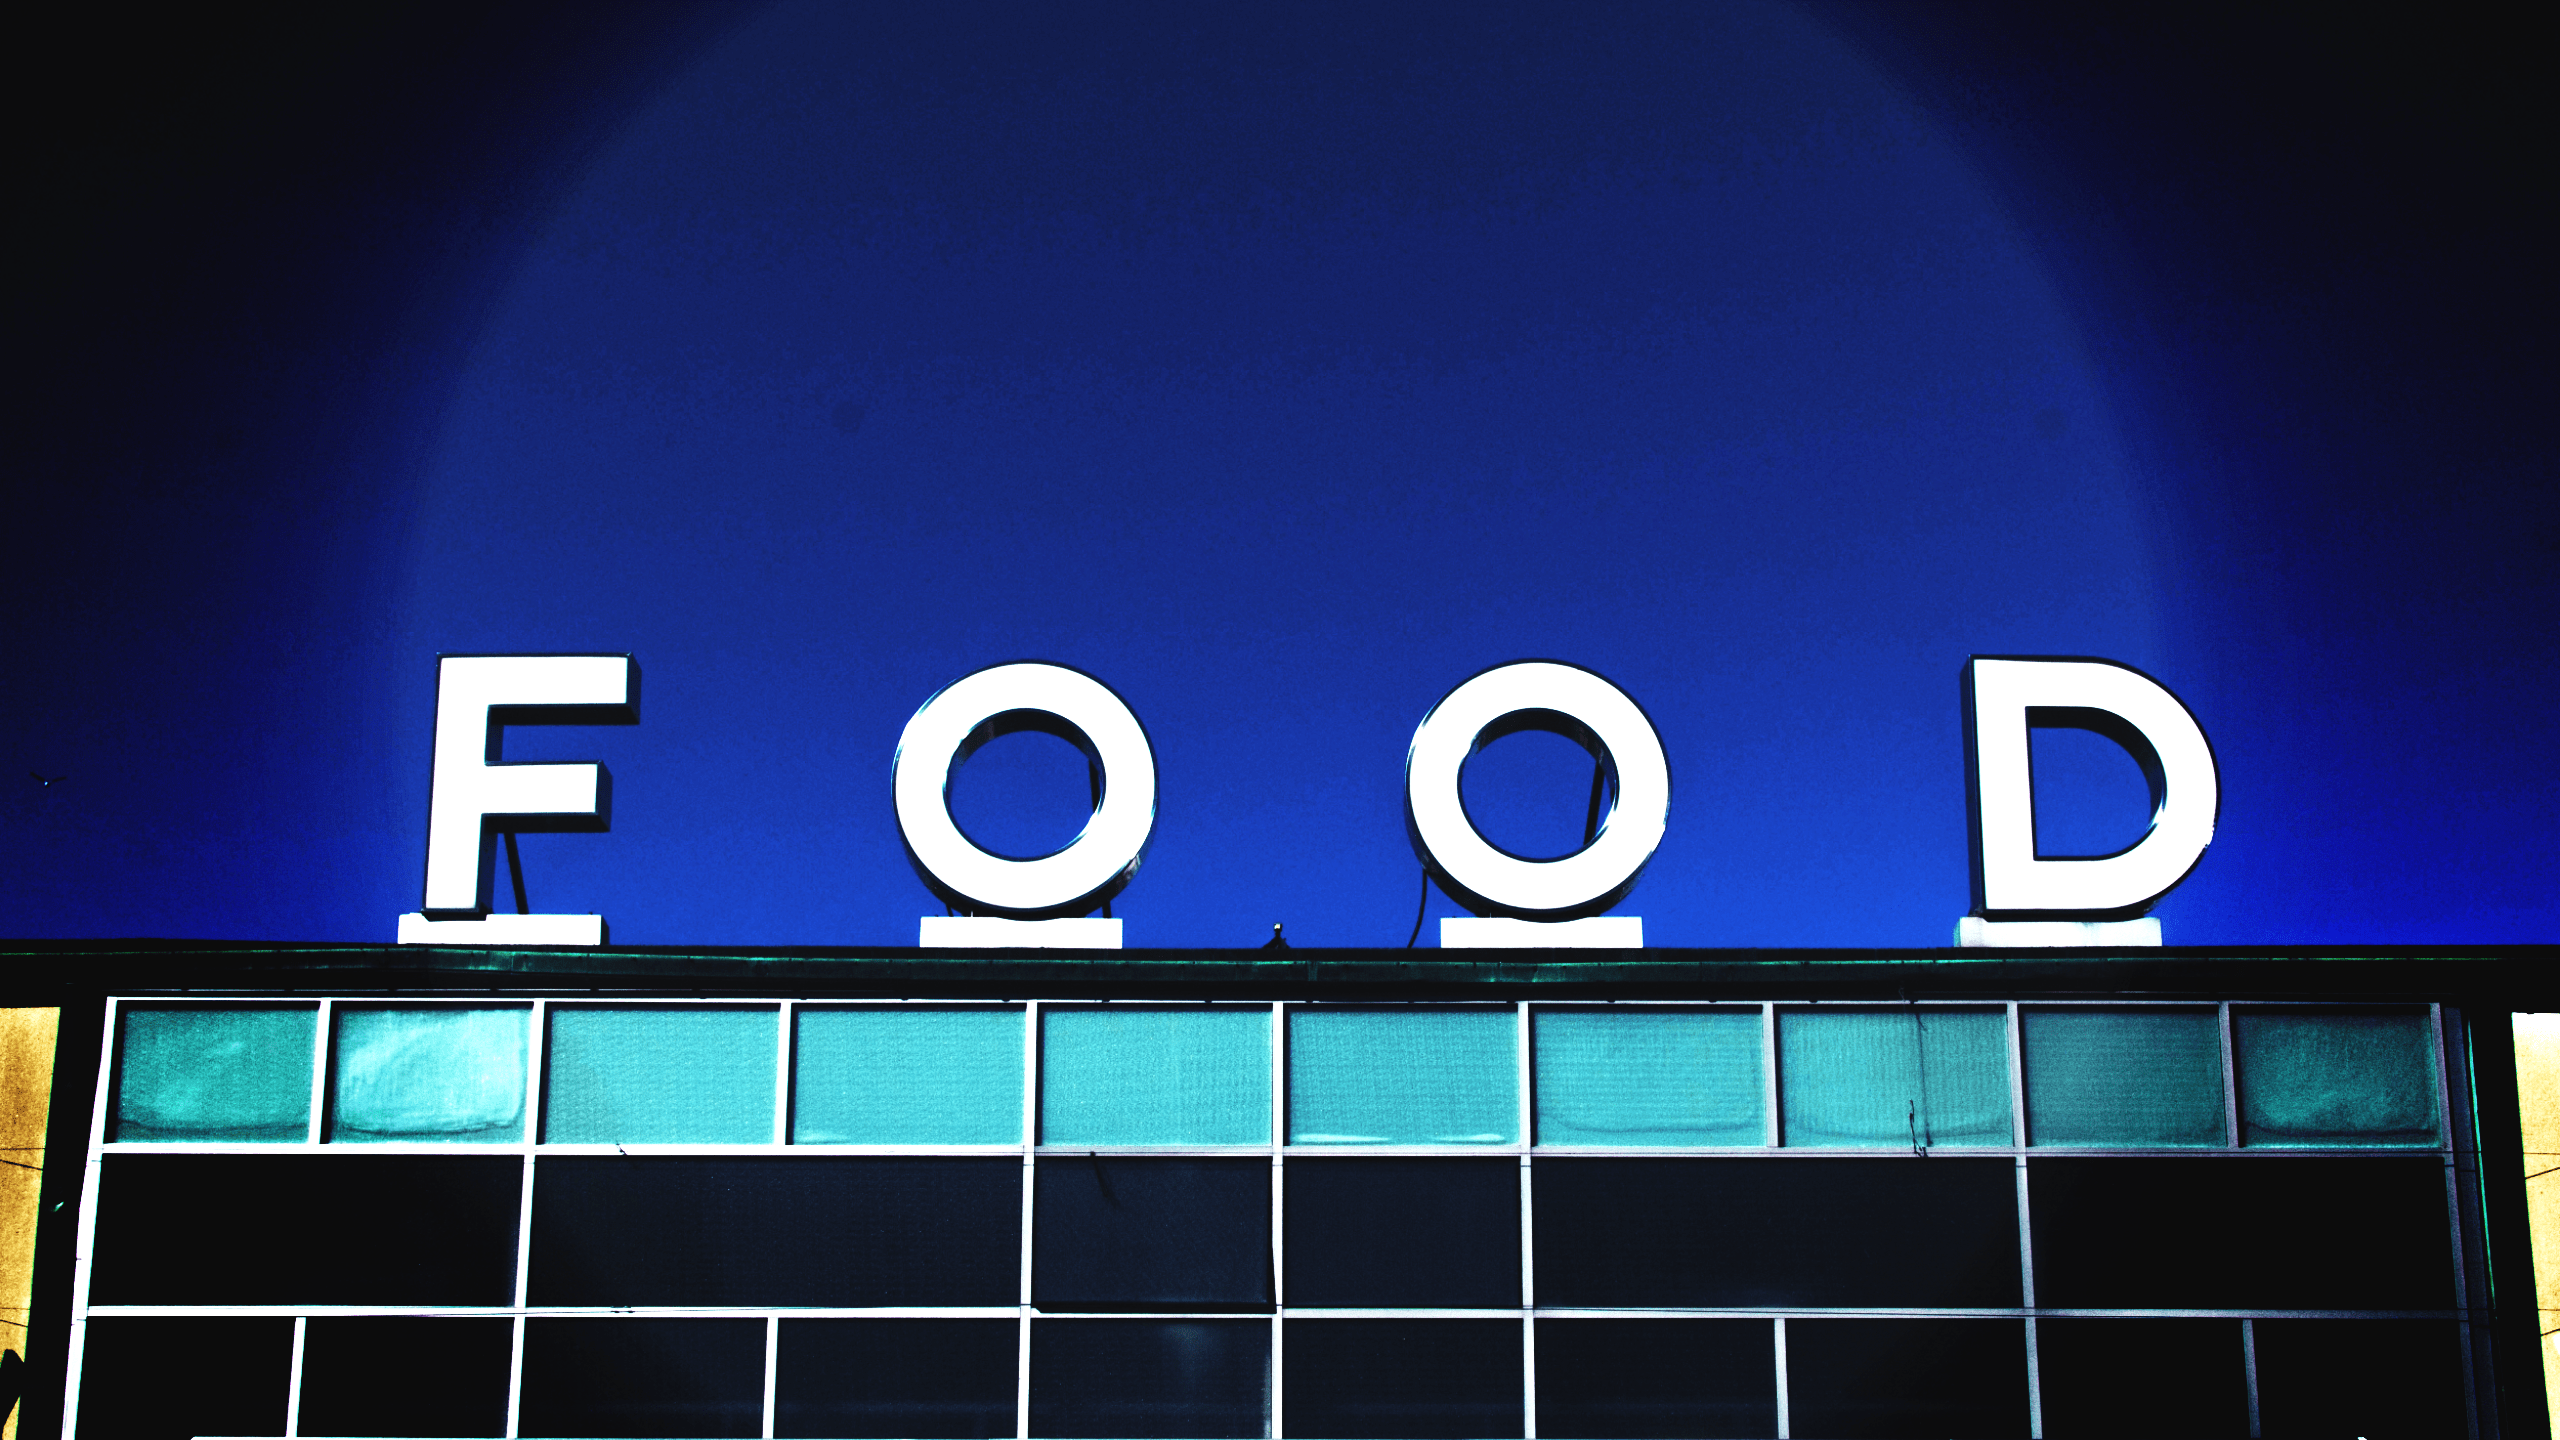 """Product,                Technology,                Display,                Device,                Electronic,                Signage,                Computer,                Wallpaper,                Sky,                Energy,                Graphics,                Brand,                """"FOOD"""",                 Free Image"""